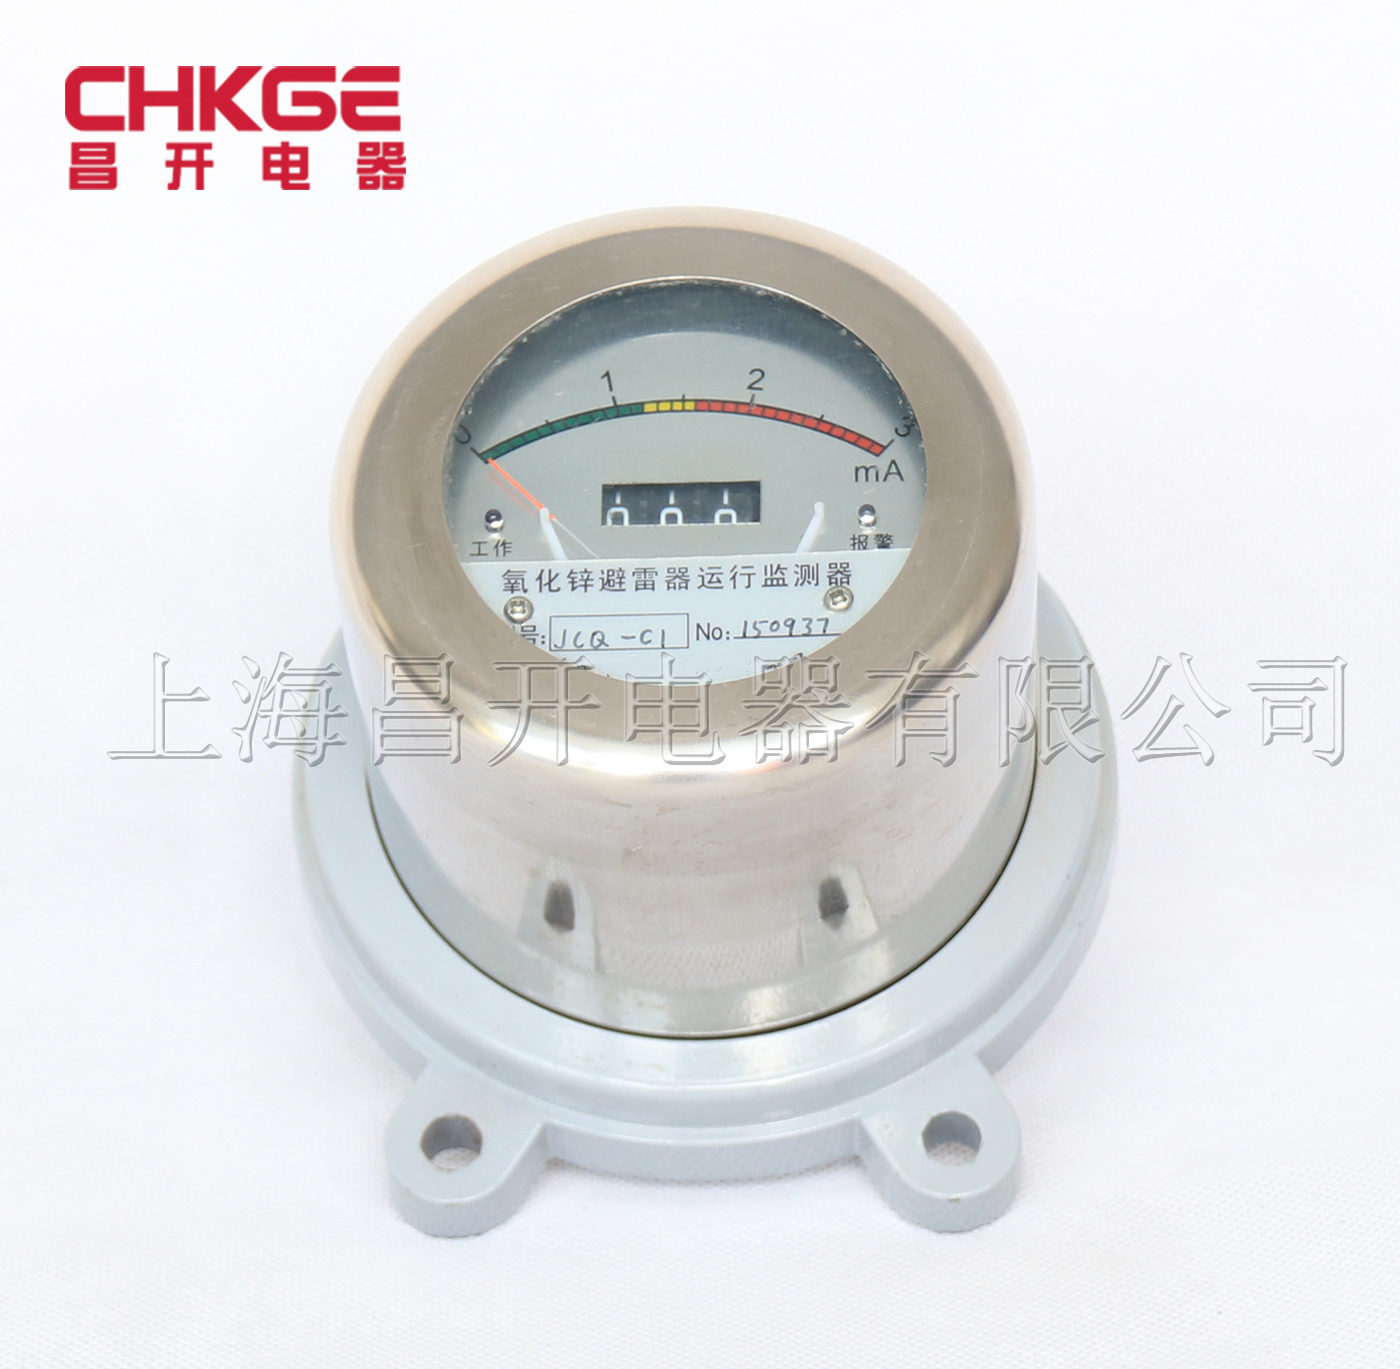 Jcq3a-10 / 800 220kV arrester online monitor with discharge counter jcq-3